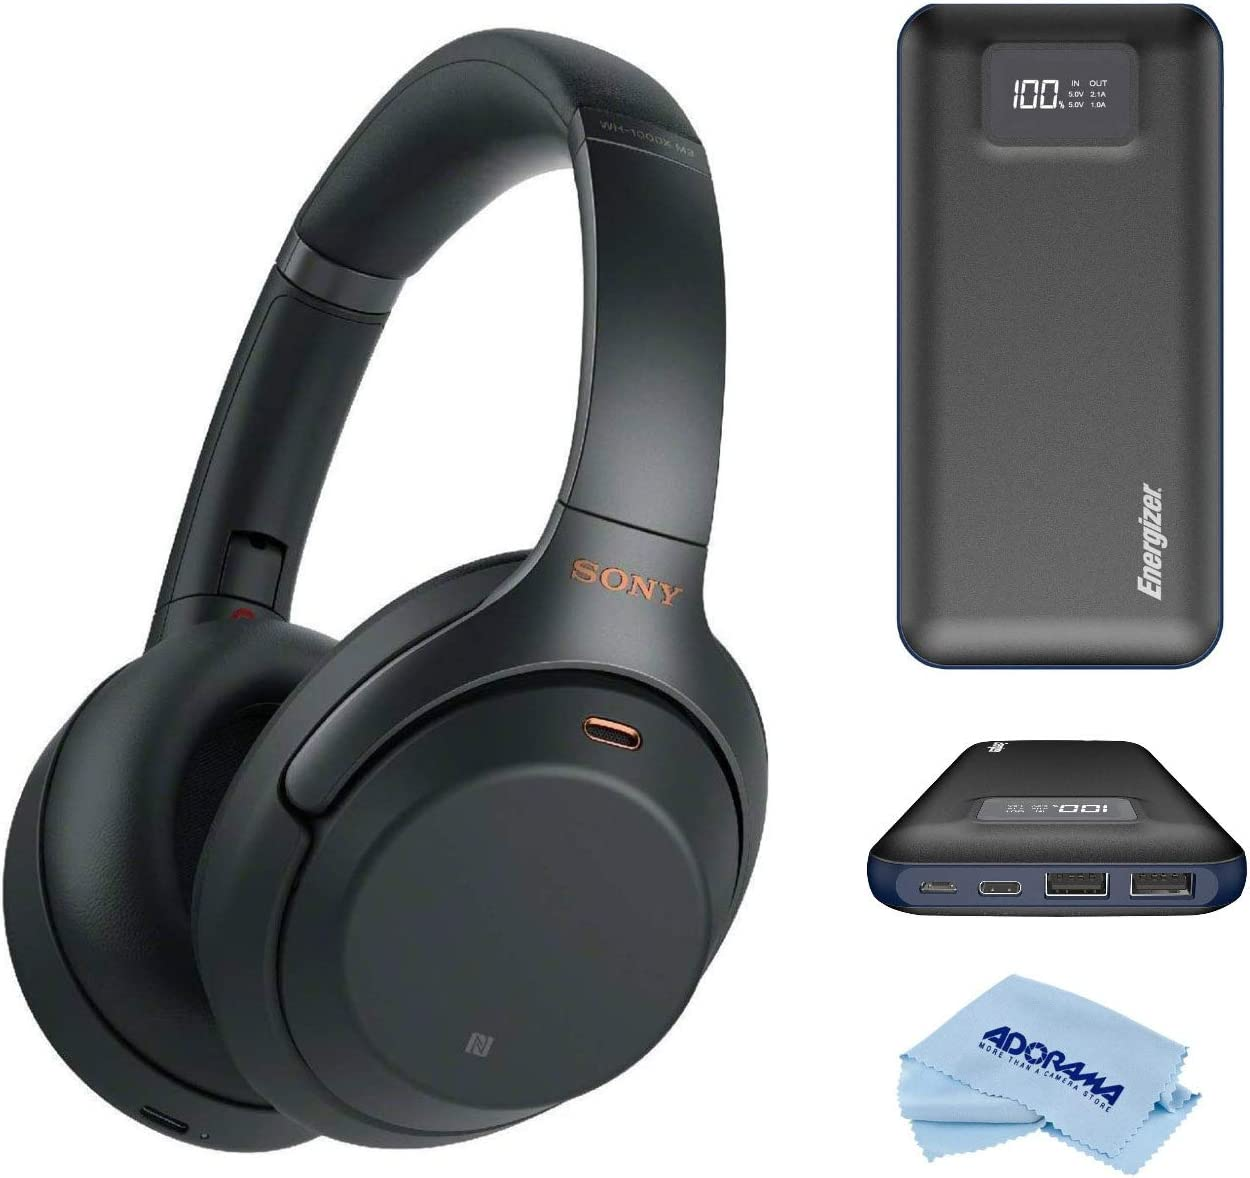 Sony WH-1000XM3 Wireless Industry-Leading Noise-Cancelling Over-Ear Headphones with Google Assistant